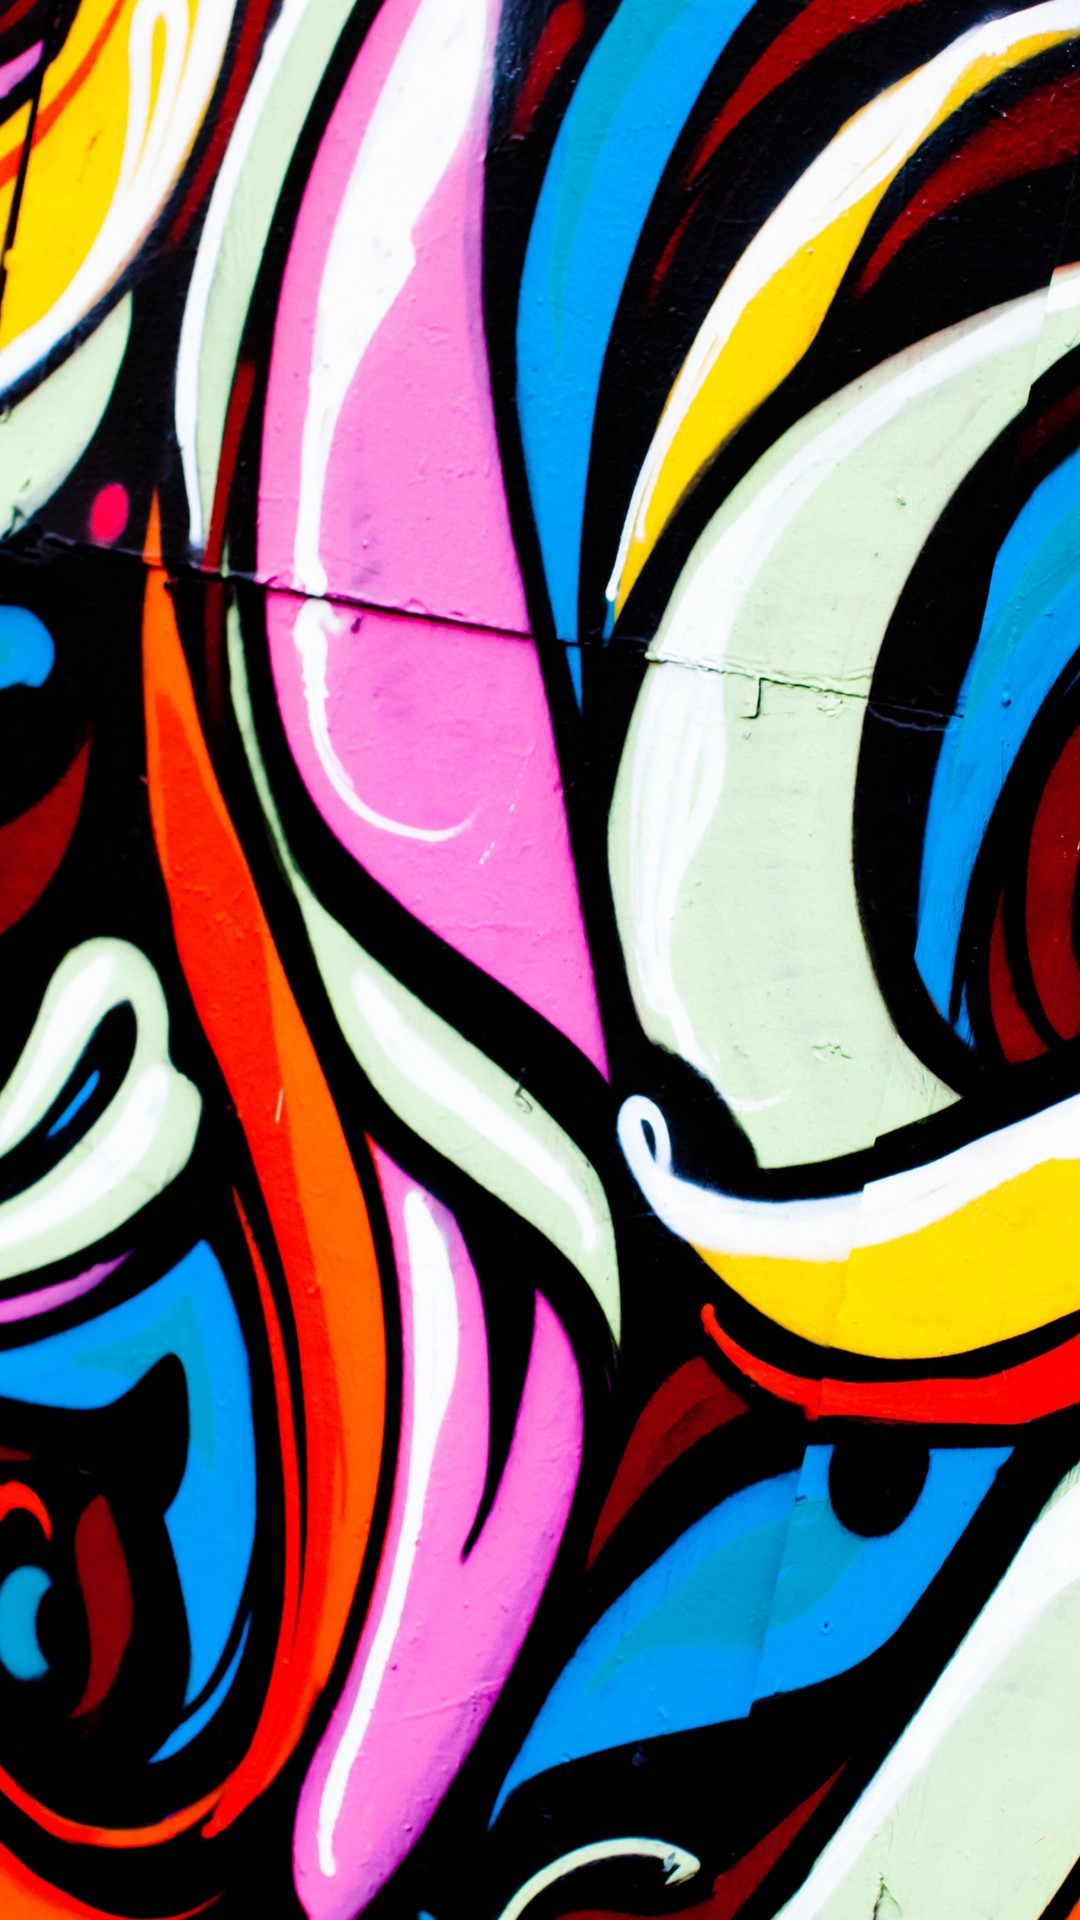 Colorful Art on Wall